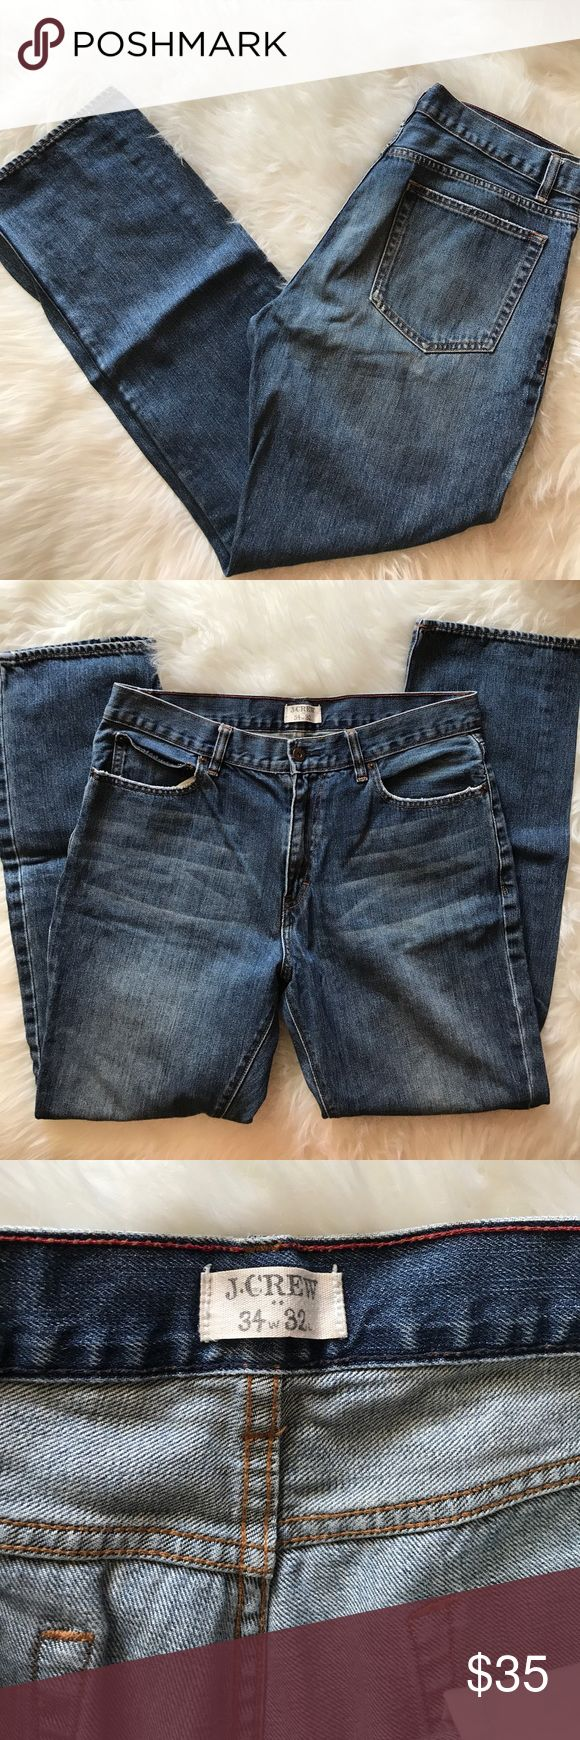 J Crew Men Straight Cut Jeans sz 34 x 32 In excellent condition Straight fit jeans by J Crew. Size 34. Inseam 32. J. Crew Jeans Straight